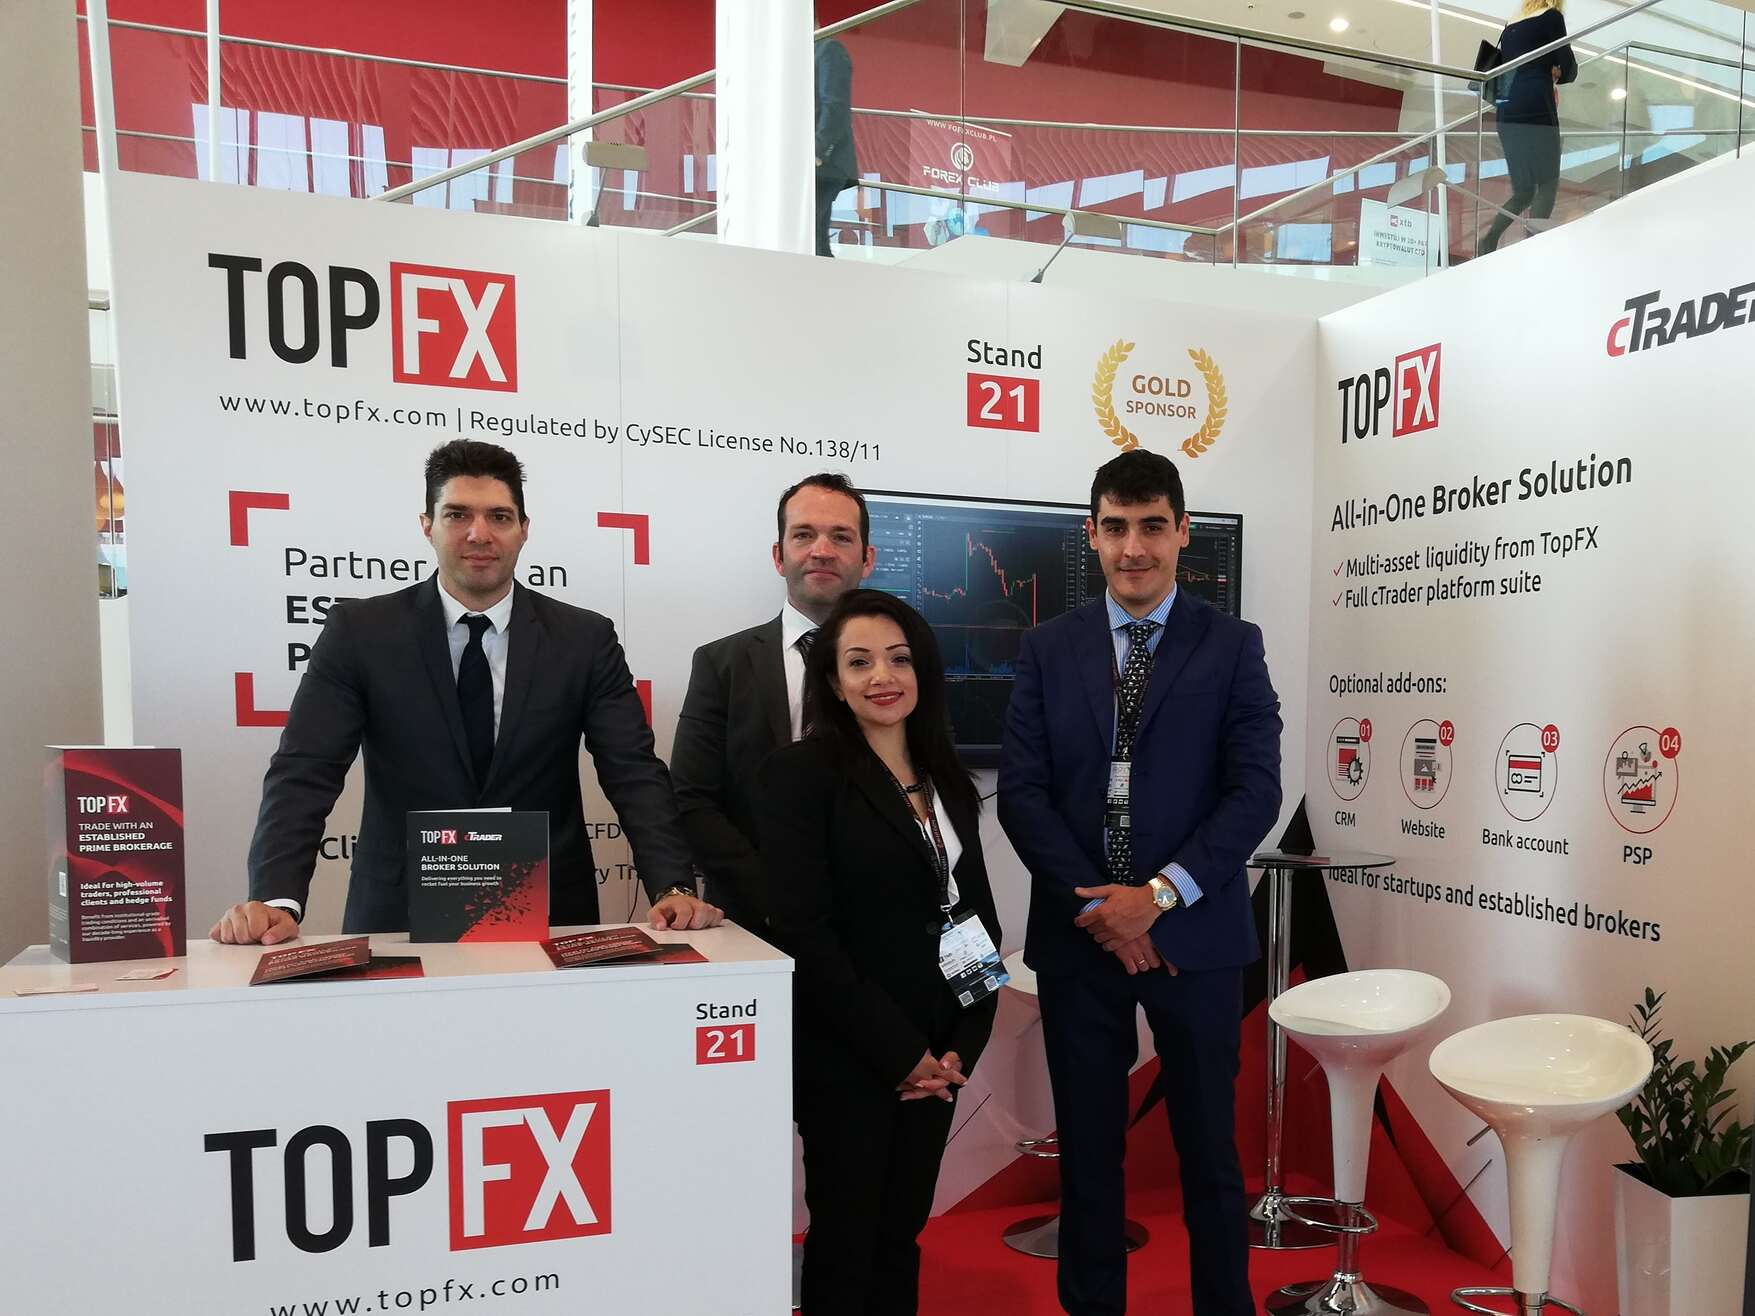 TopFX attends Invest Cuffs 2019-The team